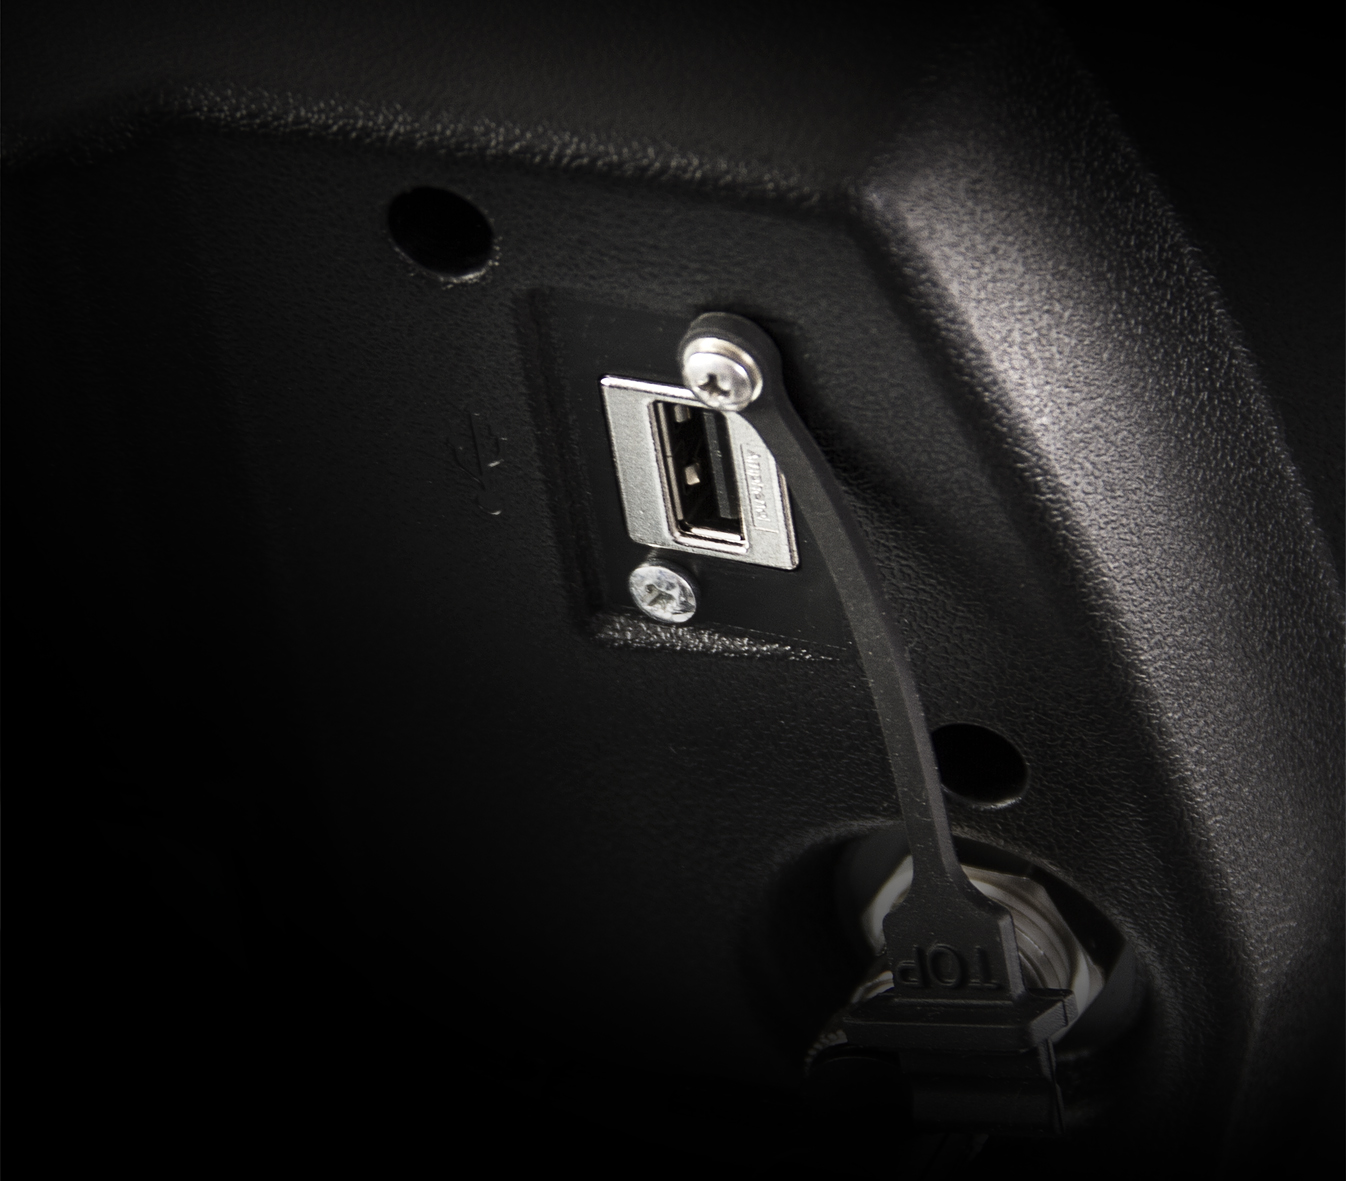 DURATIQ USB port